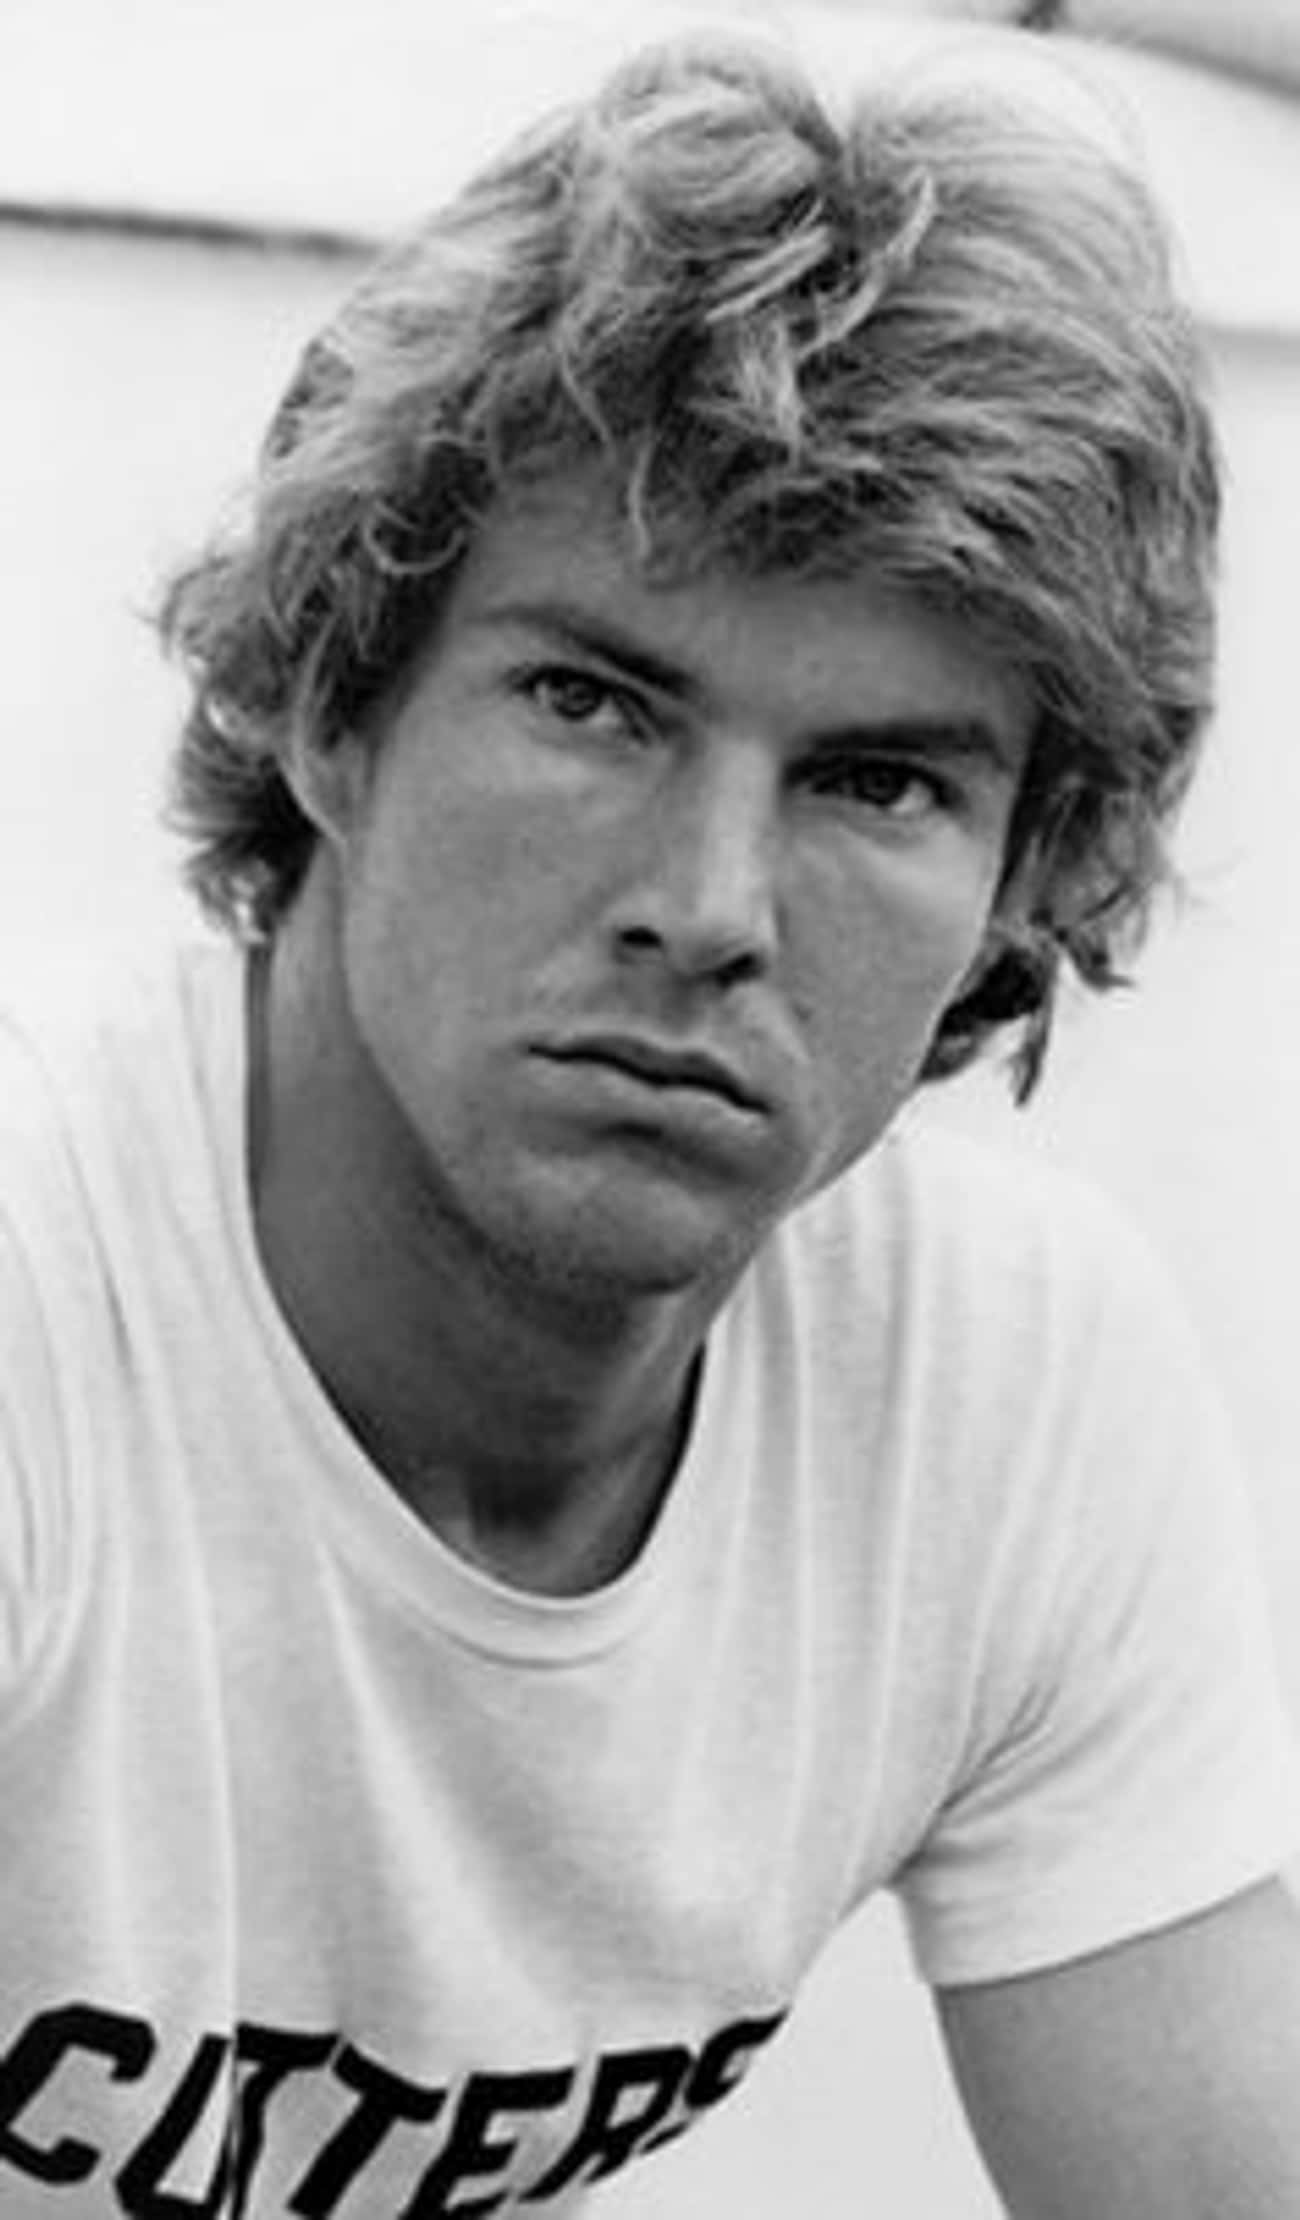 Young Dennis Quaid in White Pr is listed (or ranked) 4 on the list 20 Pictures of Young Dennis Quaid